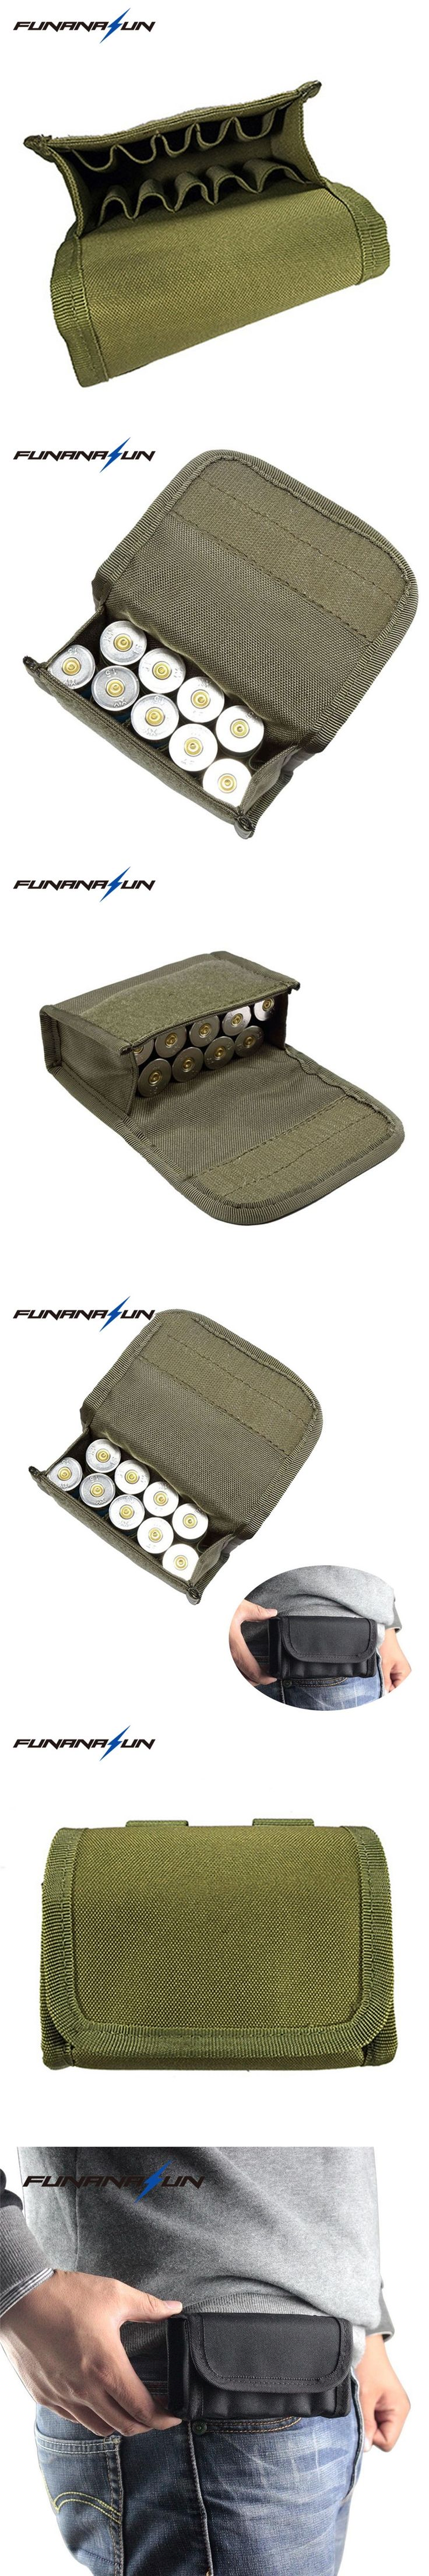 10 Round Molle Shotgun Shotshell Reload Holder Molle Ammo Pouch For 12 Gauge/20G Tactical Paintball Portable Mini Bullet Case